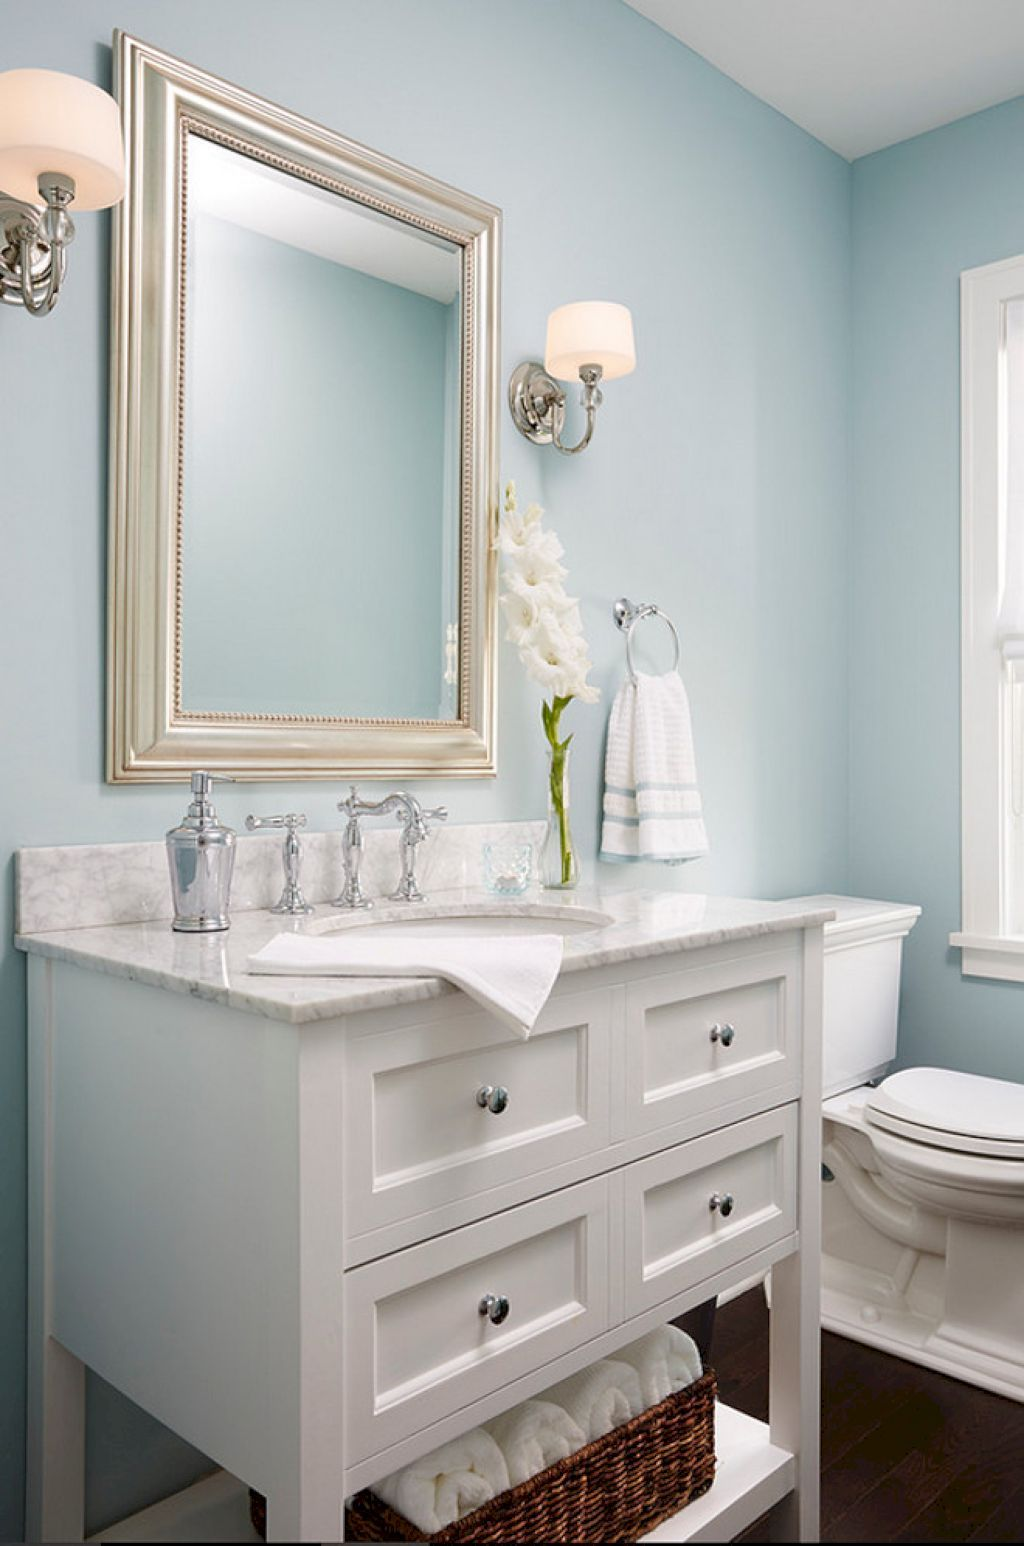 57 Cotage Bathroom Ideas Picture and Decor | Pinterest | Cottage ...